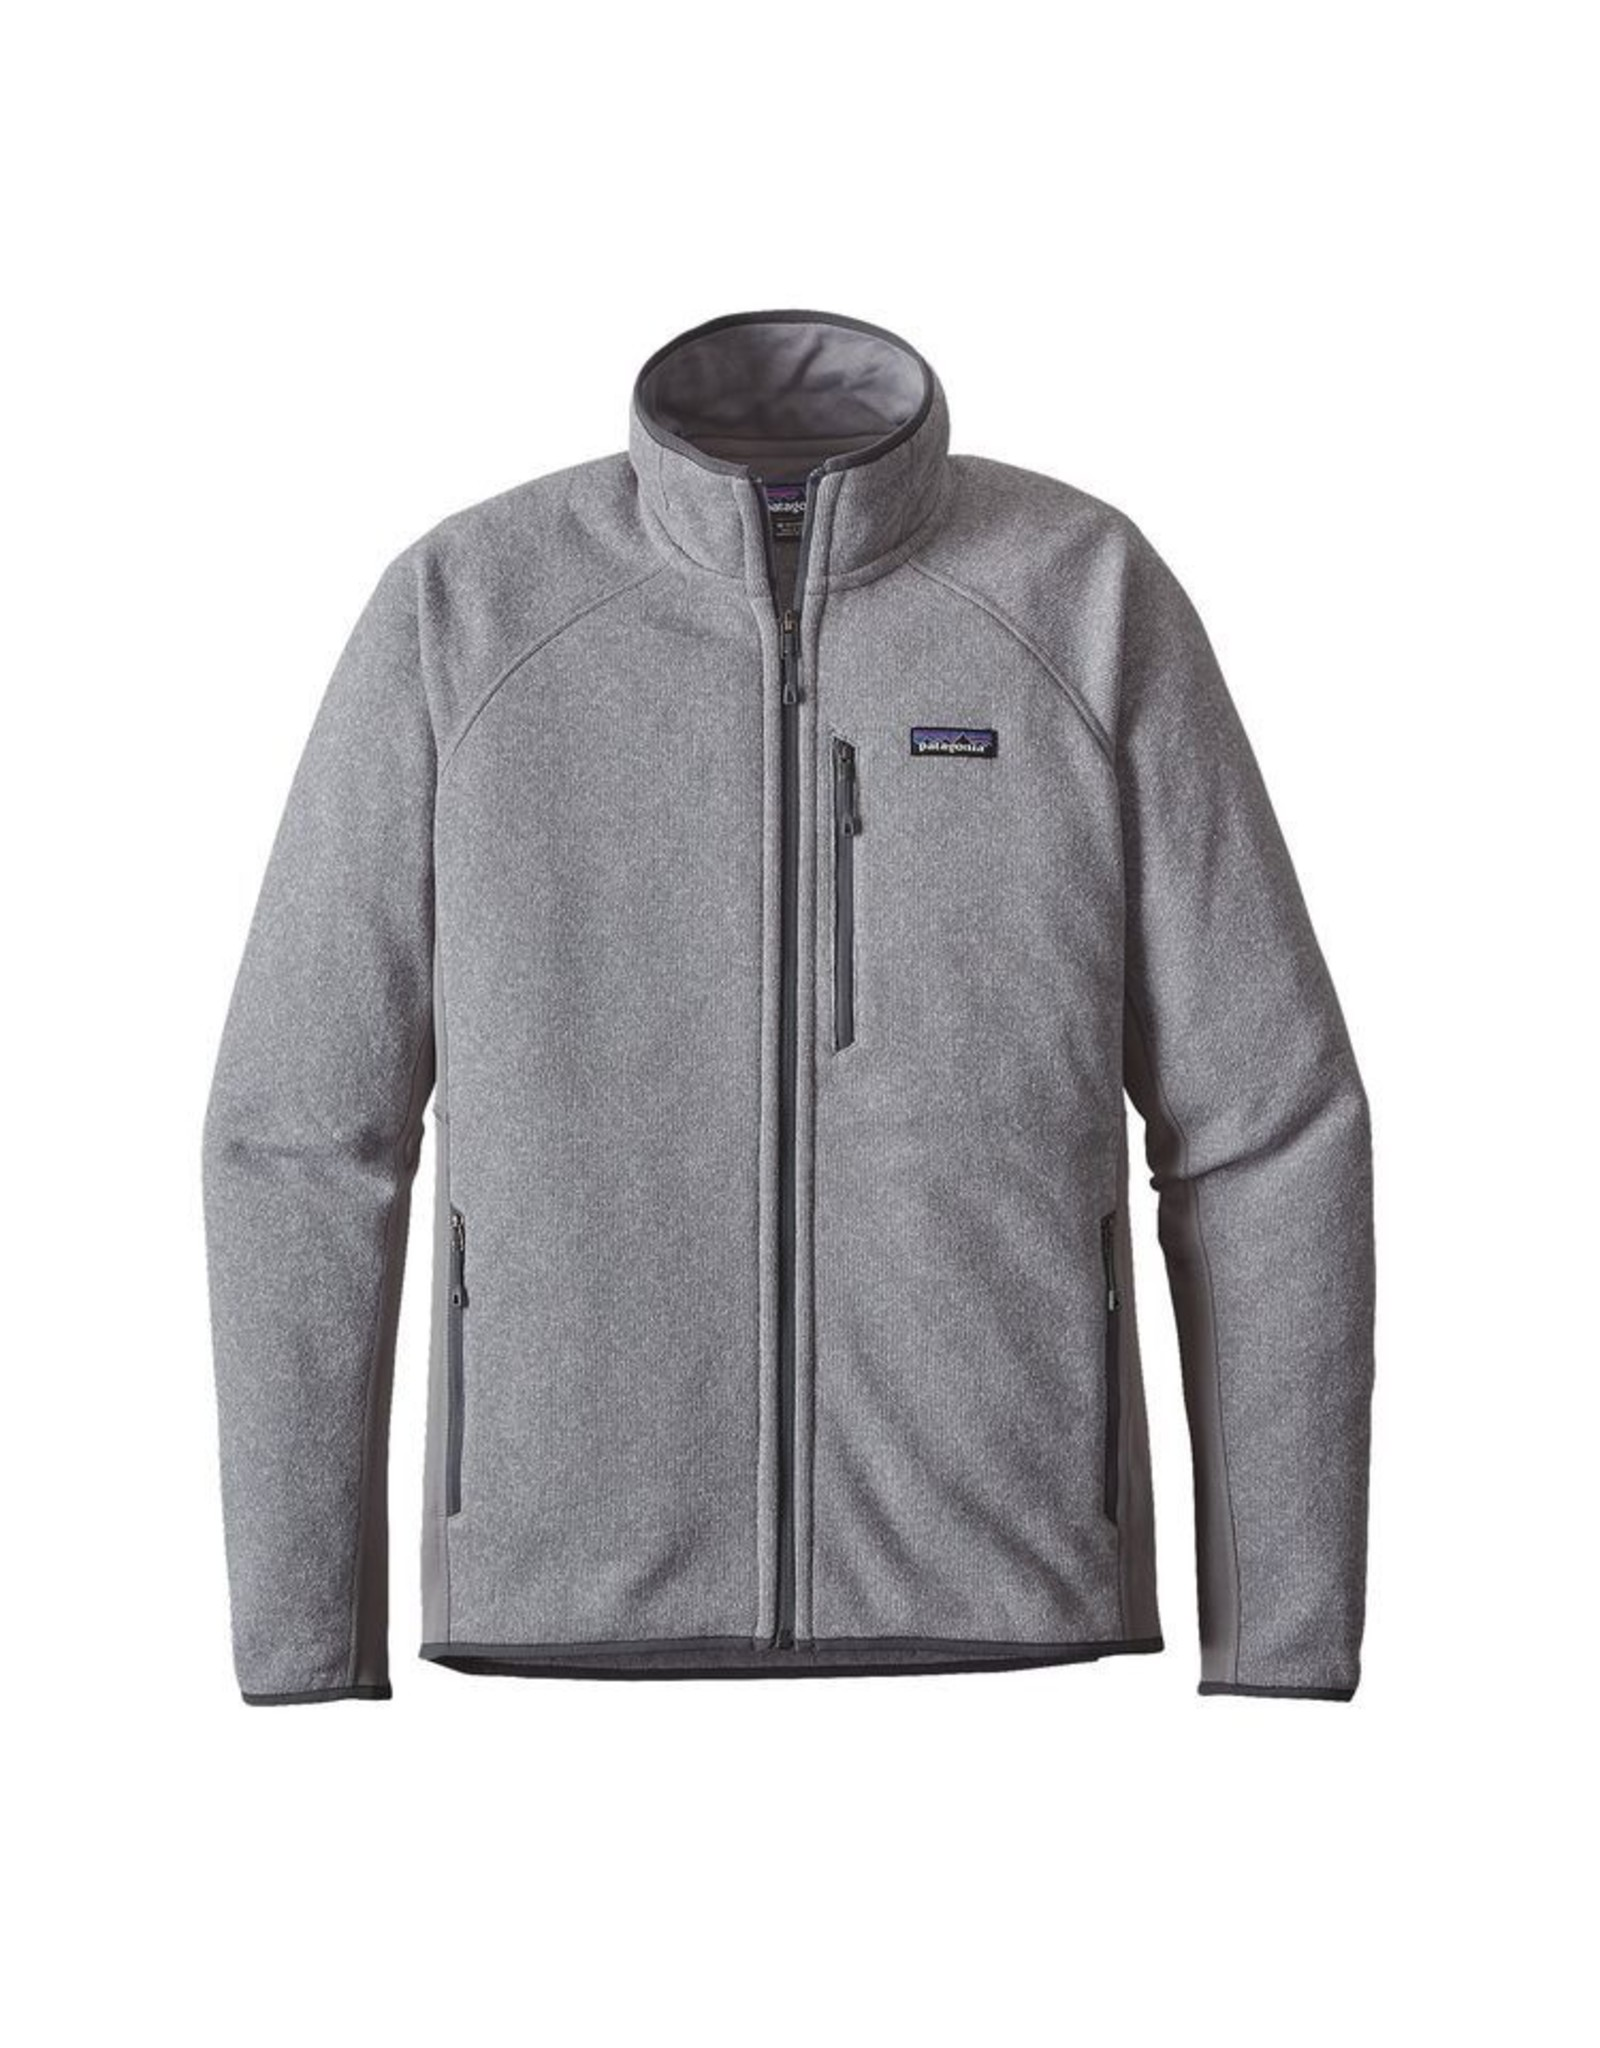 Patagonia Patagonia Performance Better Sweater Jacket